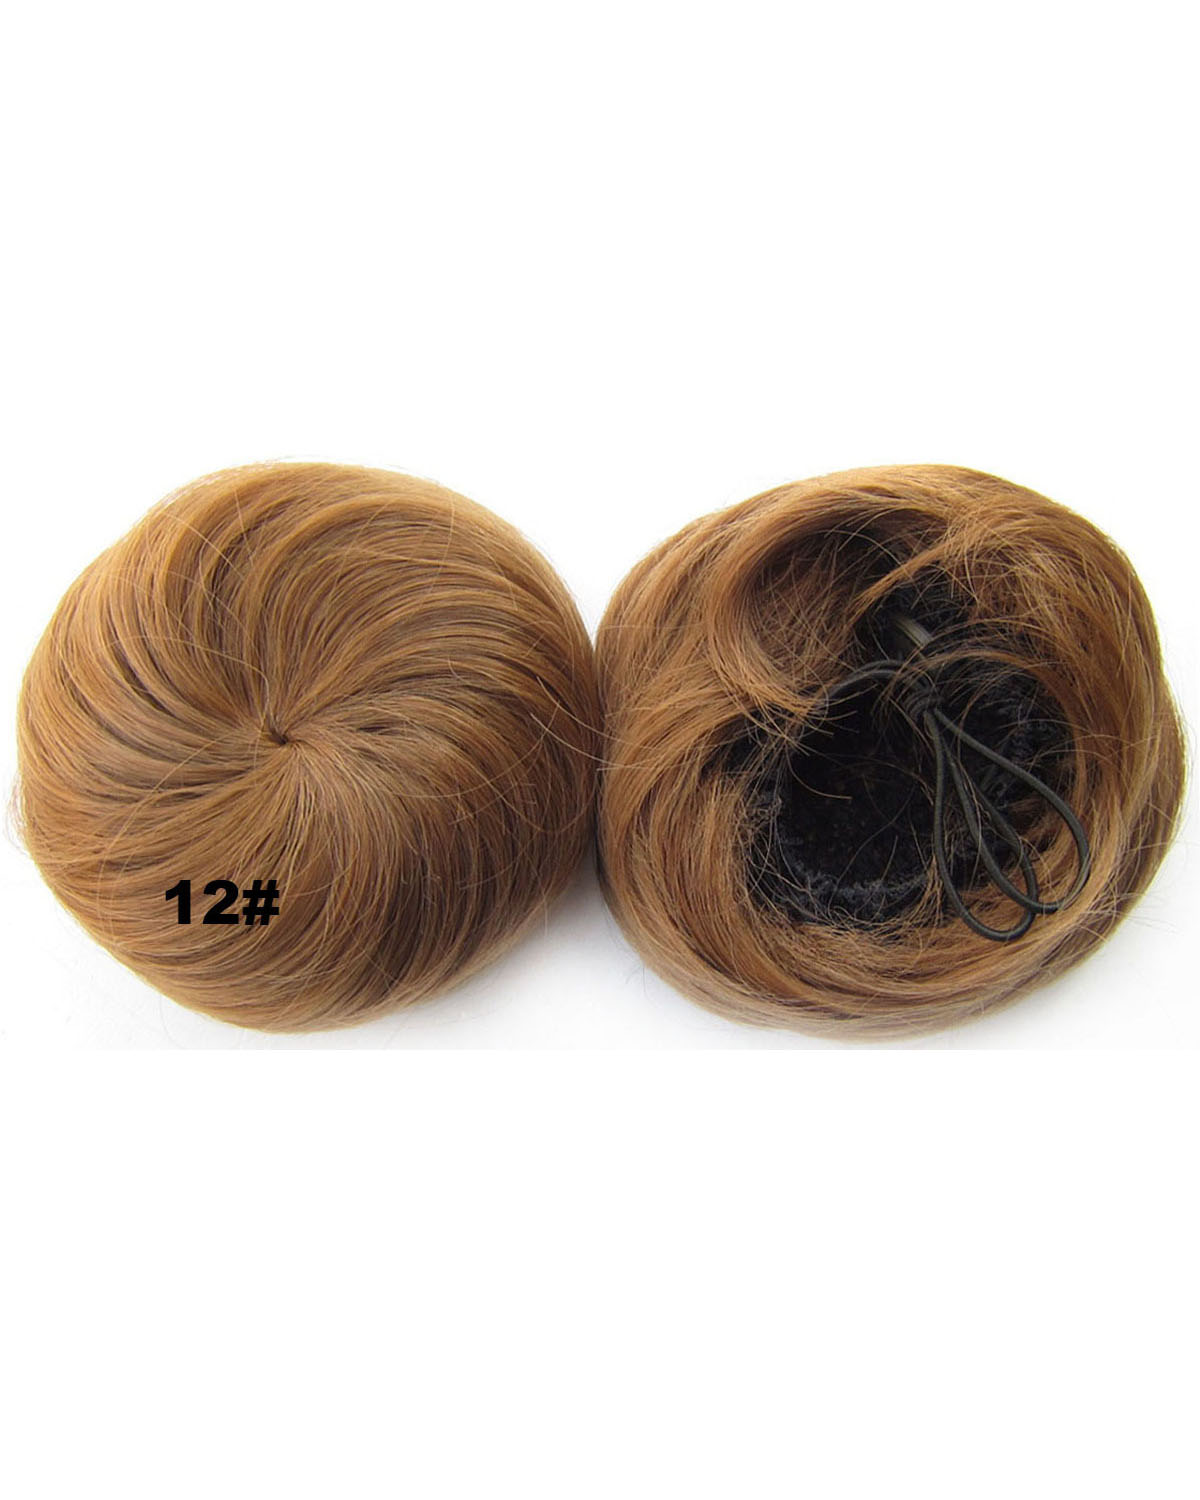 Ladies Dense Straight Short Hair Buns Drawstring Synthetic Hair Extension Bride Scrunchies 12#